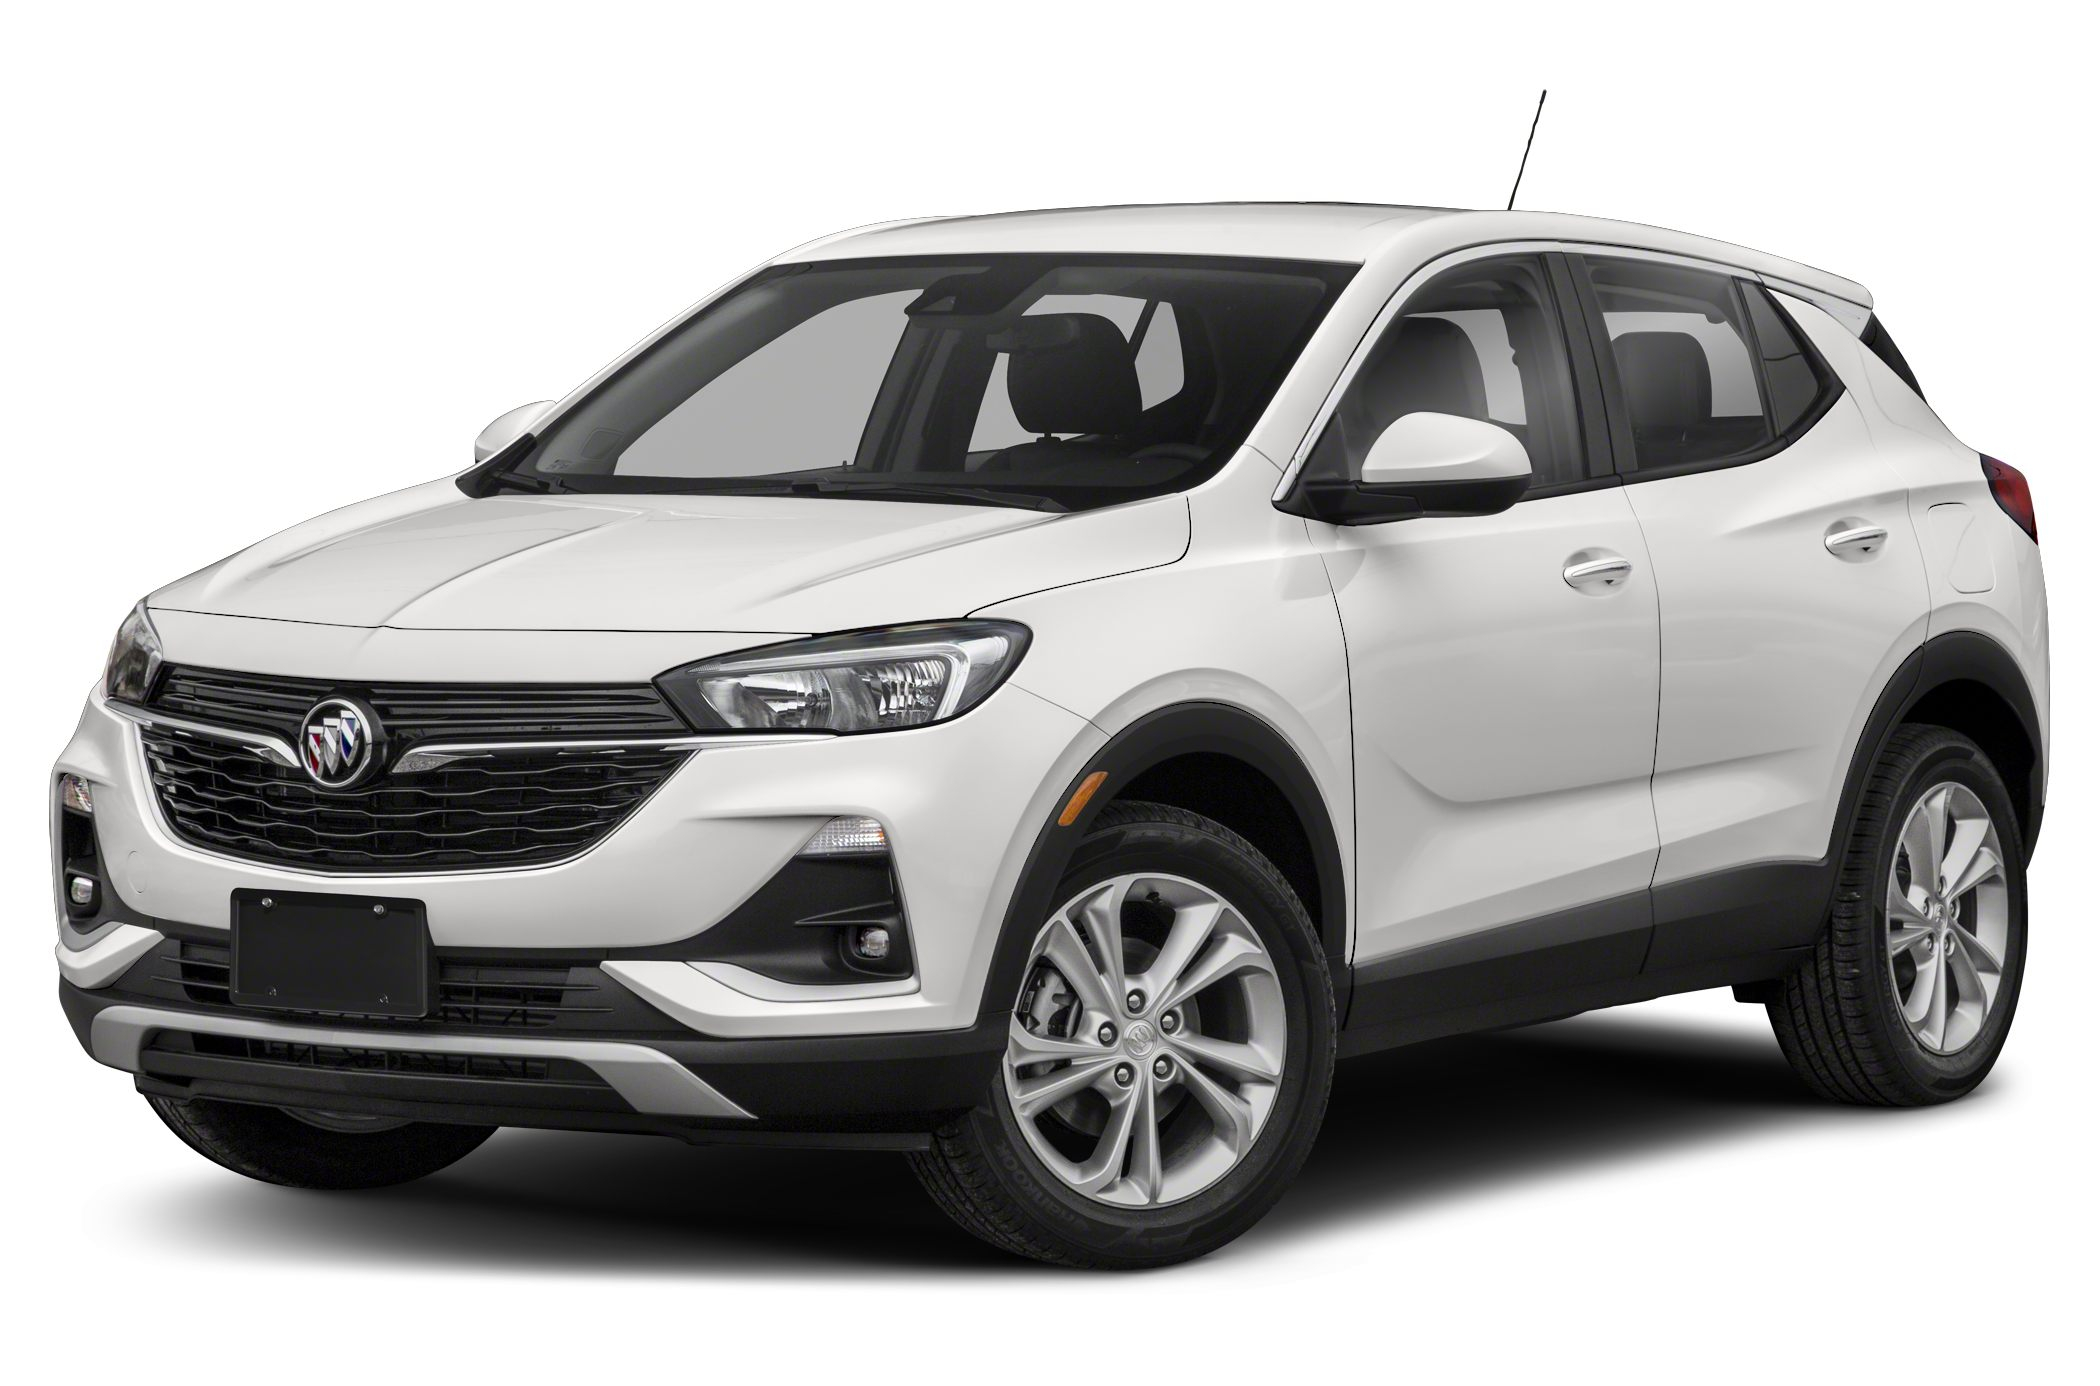 2020 Buick Encore Gx Rebates And Incentives New 2021 Buick Encore Gx Lease Price, Mpg, Msrp